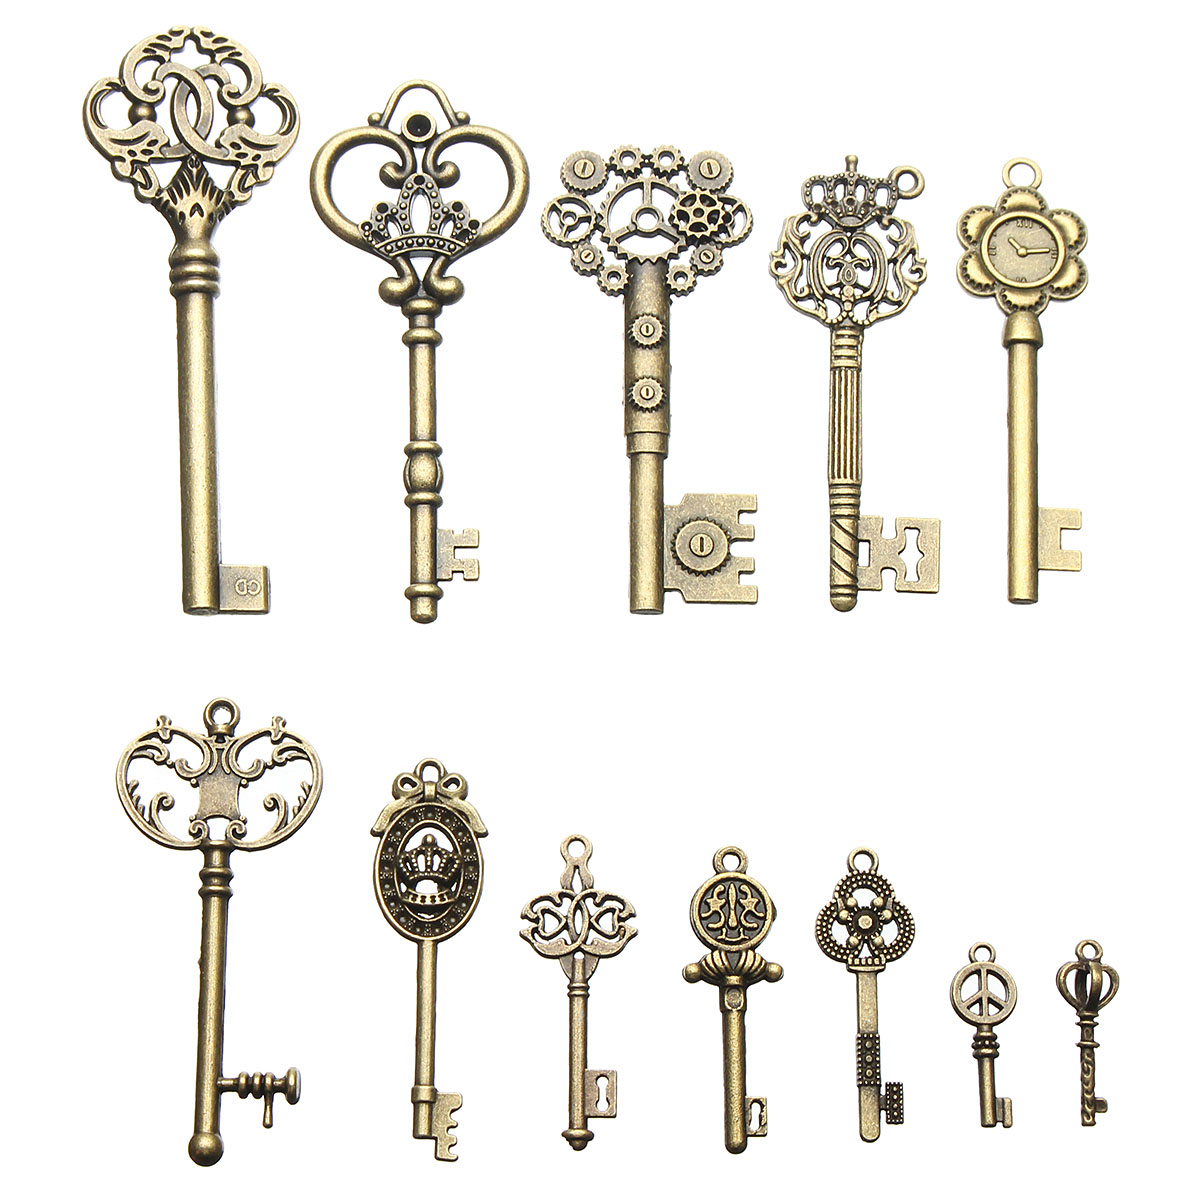 12Pcs Vintage Bronze Key For Pendant Necklace Bracelet DIY Handmade Accessories Decoration